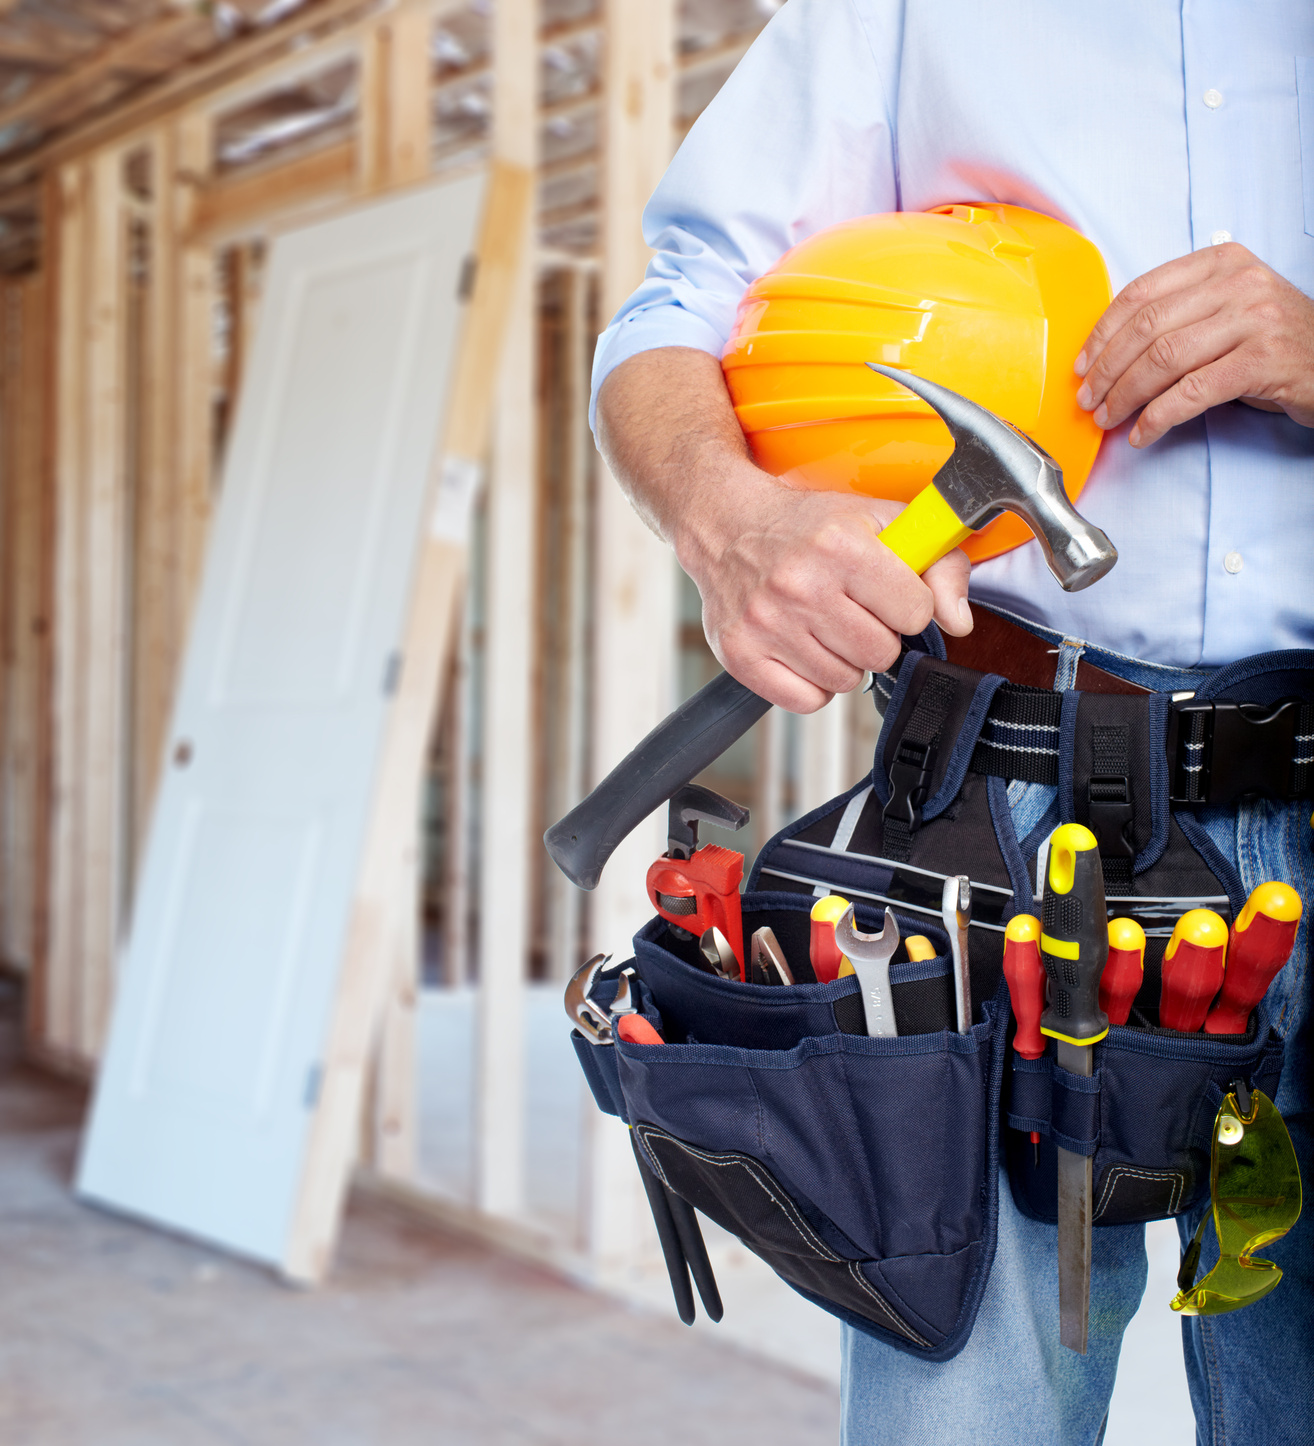 Woodworkers, contractors, and other professionals have a lot of different tools that they need for the job. Lighten your tool belt by using a composite device for measuring moisture instead of two or three specialty devices.